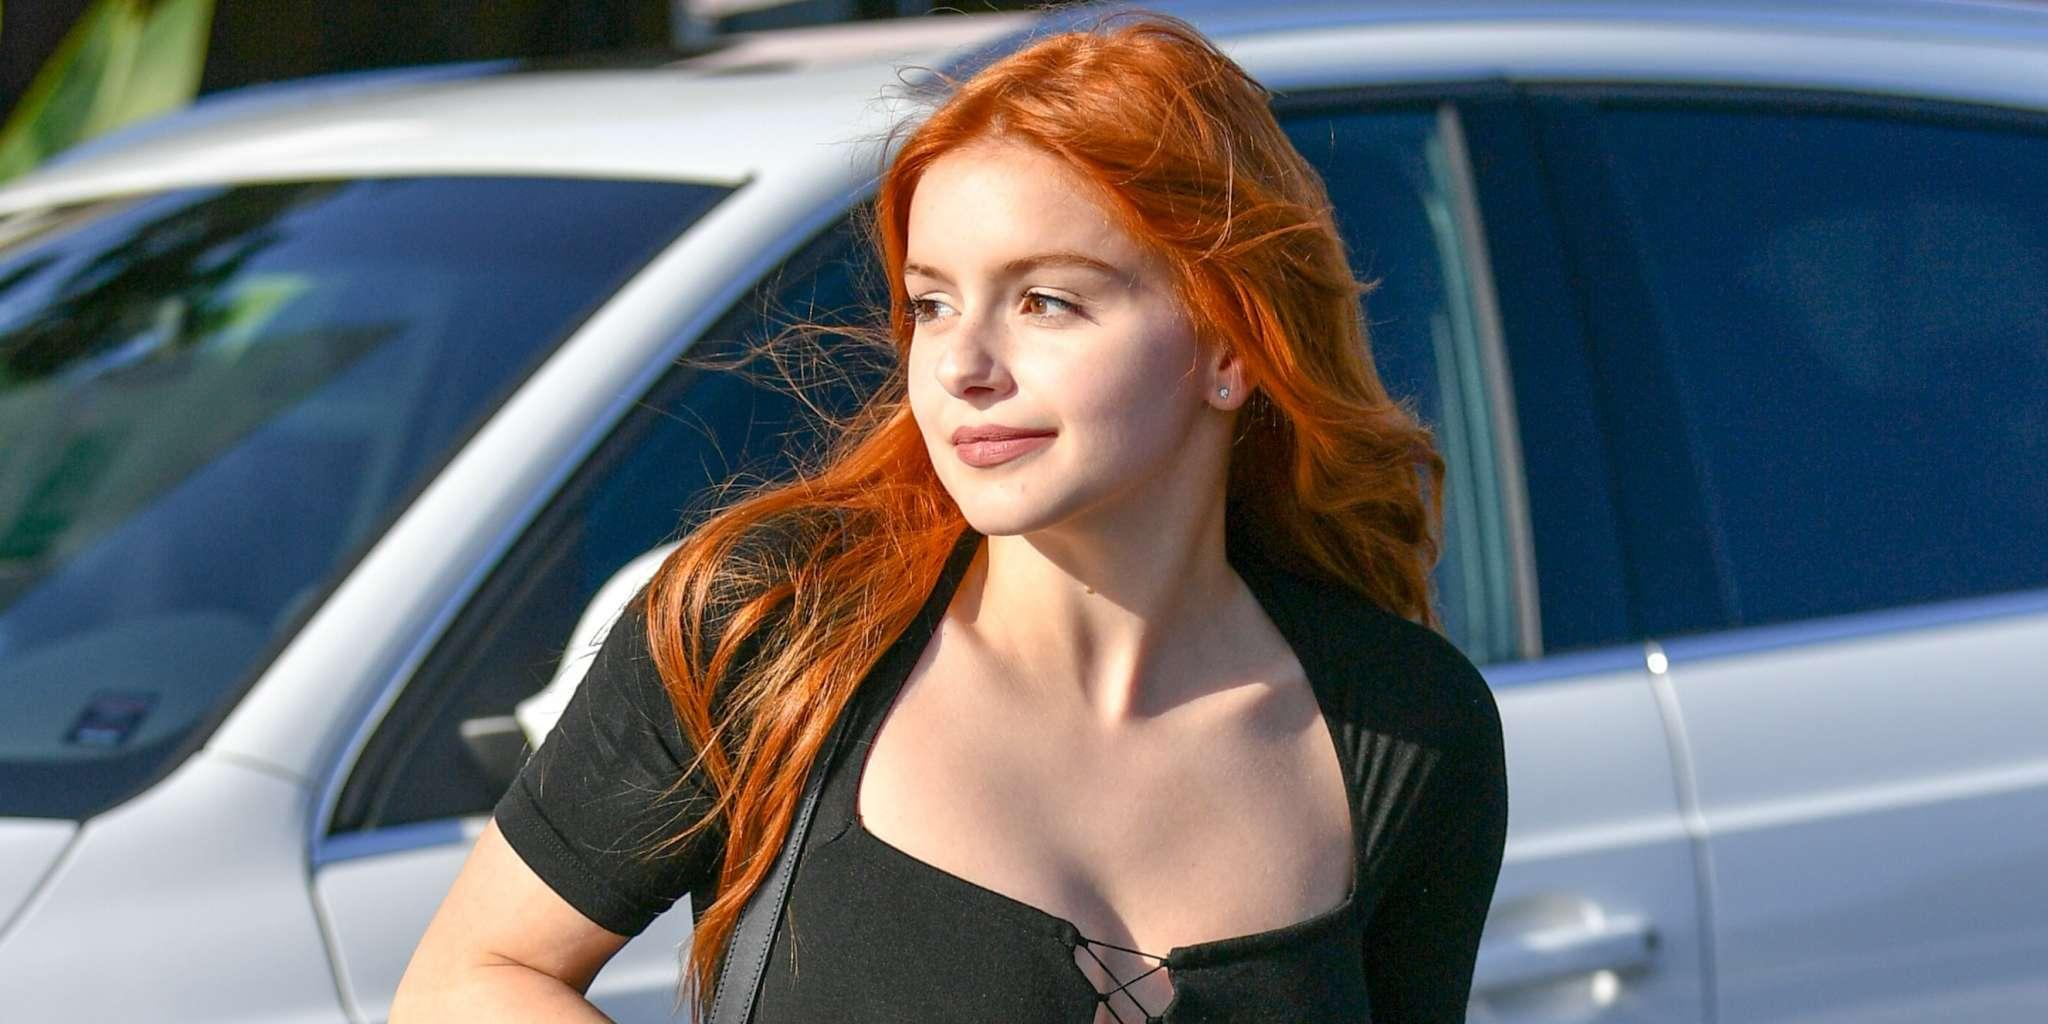 Ariel Winter Claps Back At Hater Accusing Her Of Getting Many Plastic Surgeries